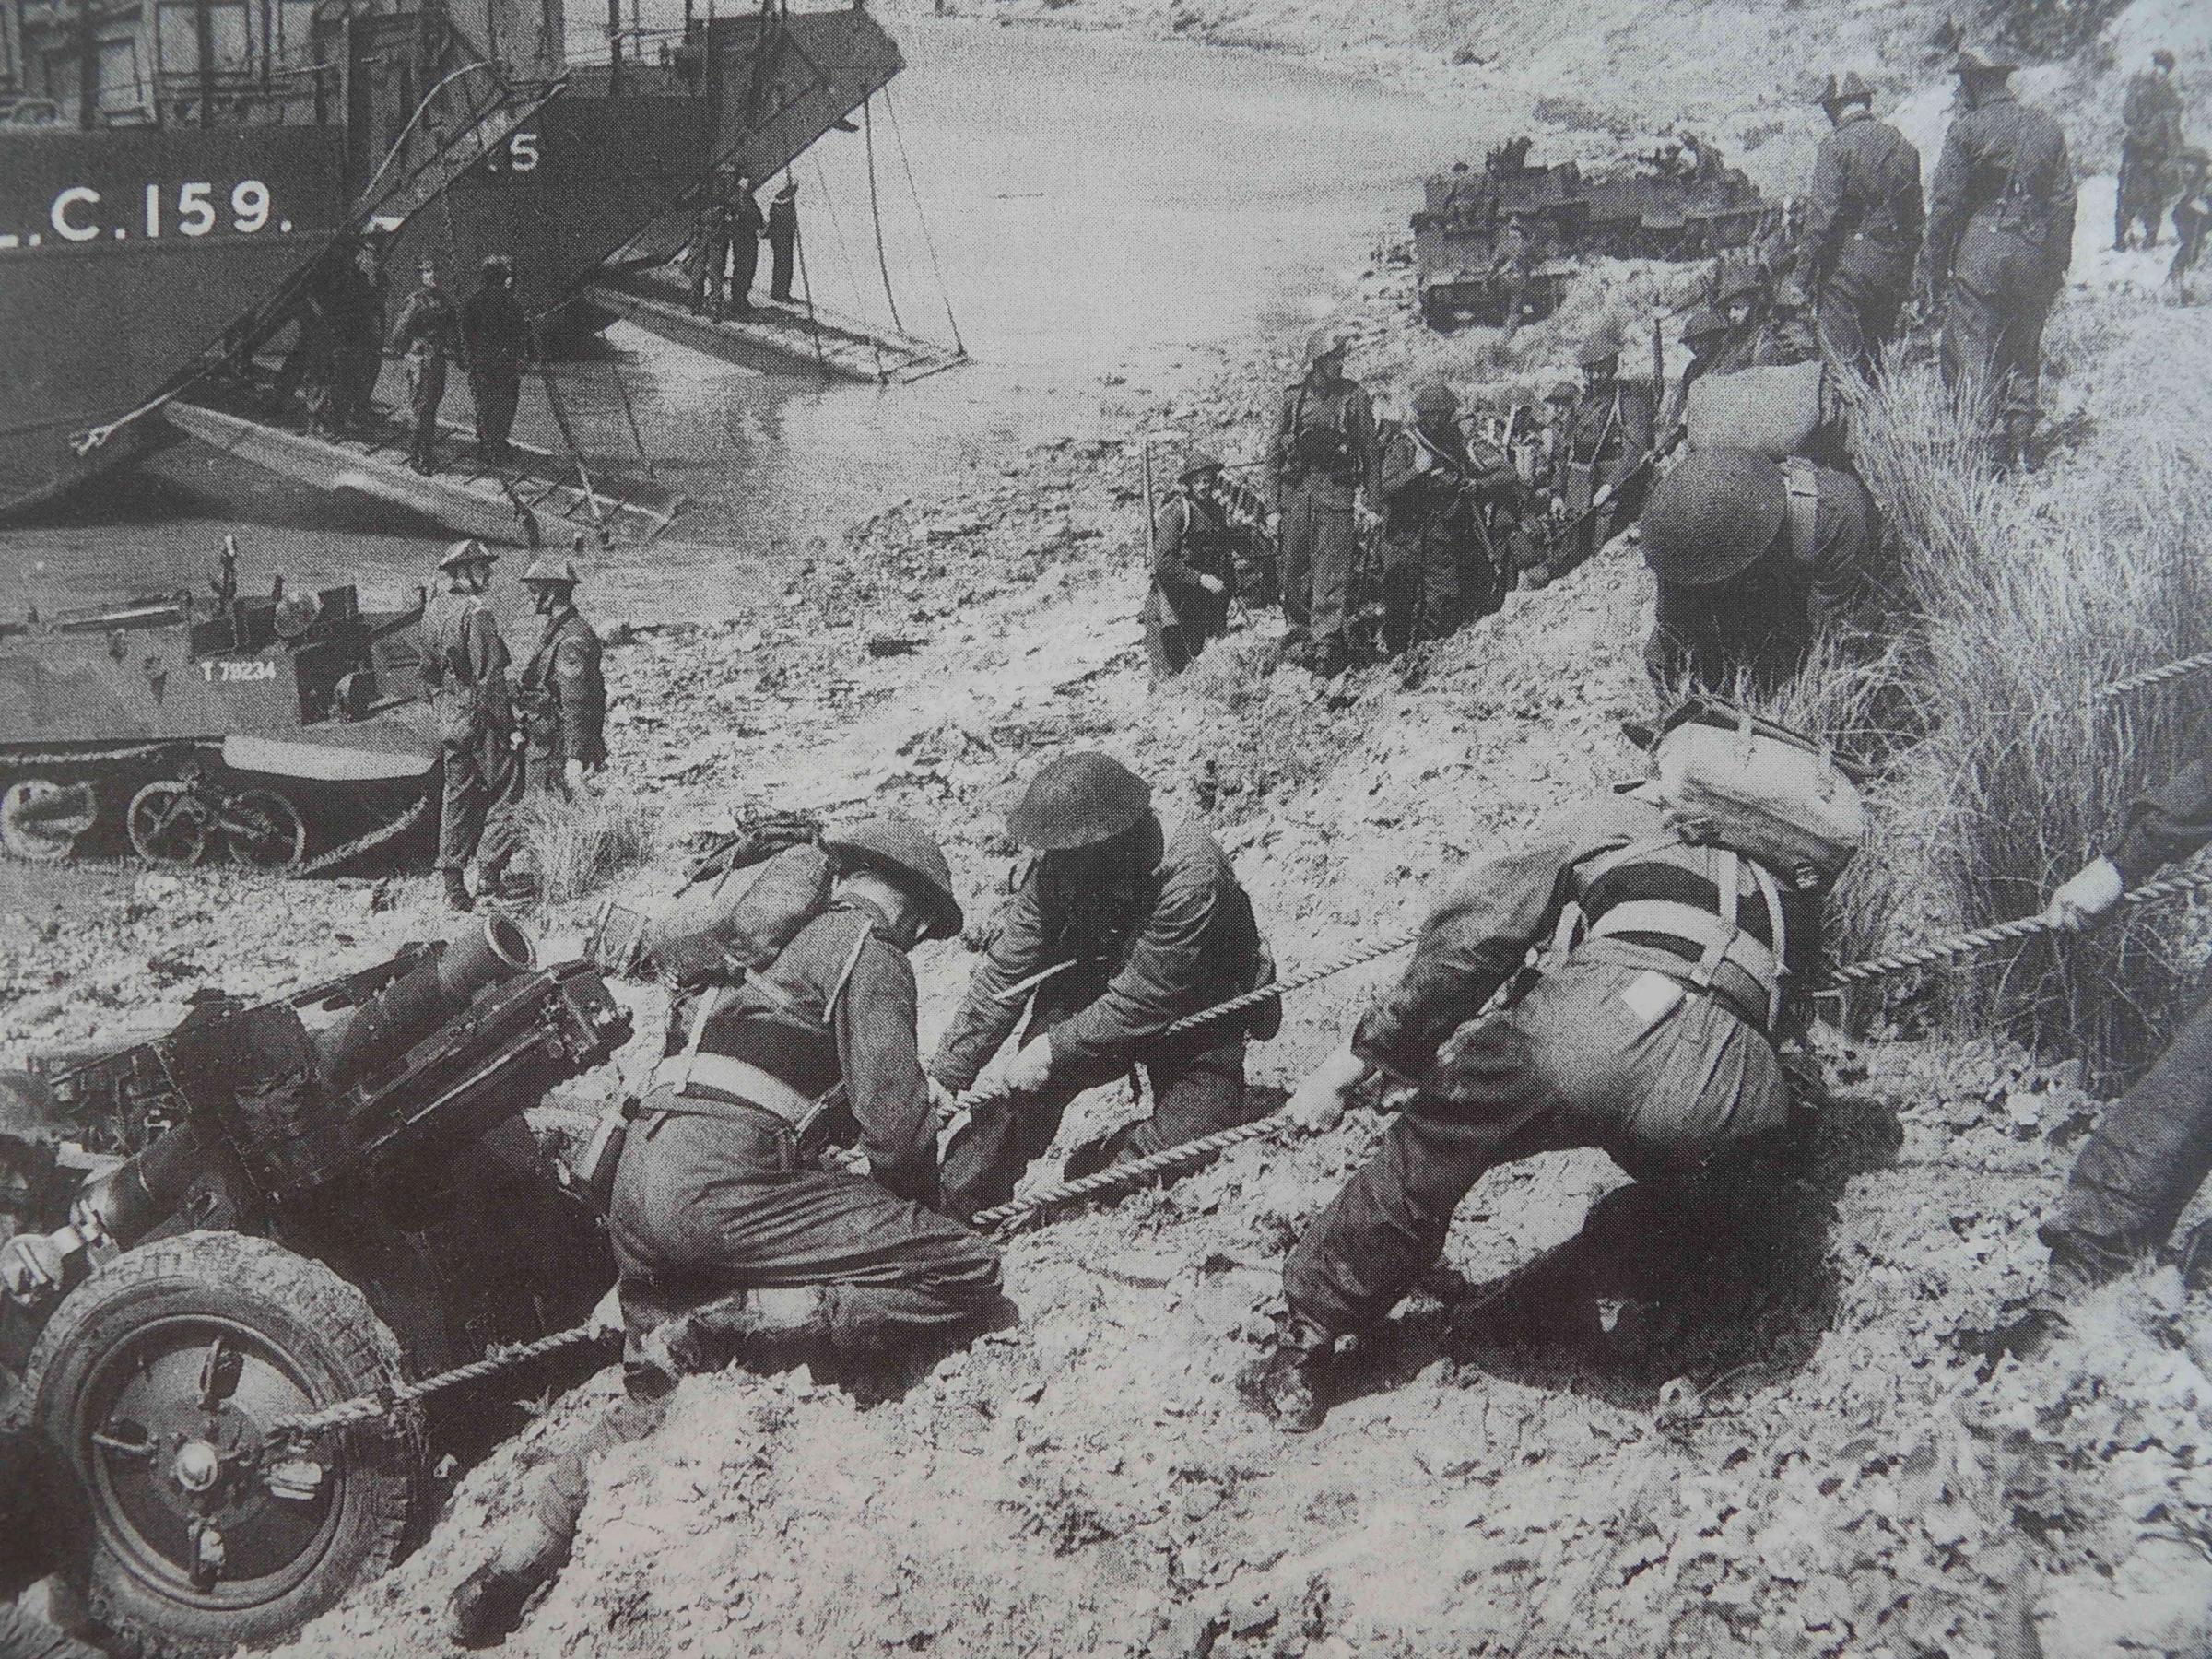 Island played its part in the Normandy landings